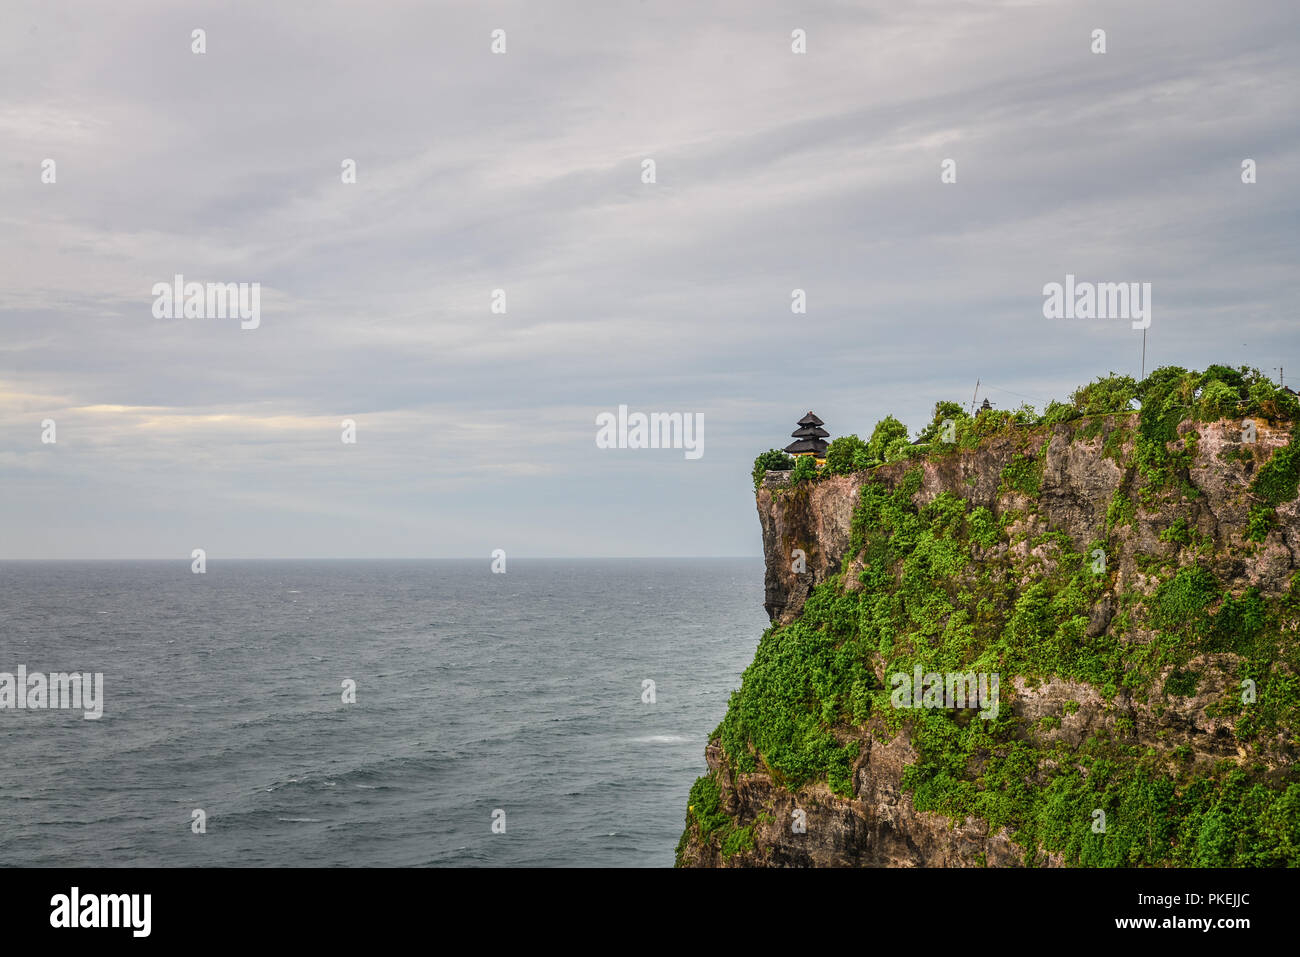 Pura Luhur Uluwatu temple, Bali, Indonesia. Amazing landscape - cliff with blue sky and sea Stock Photo